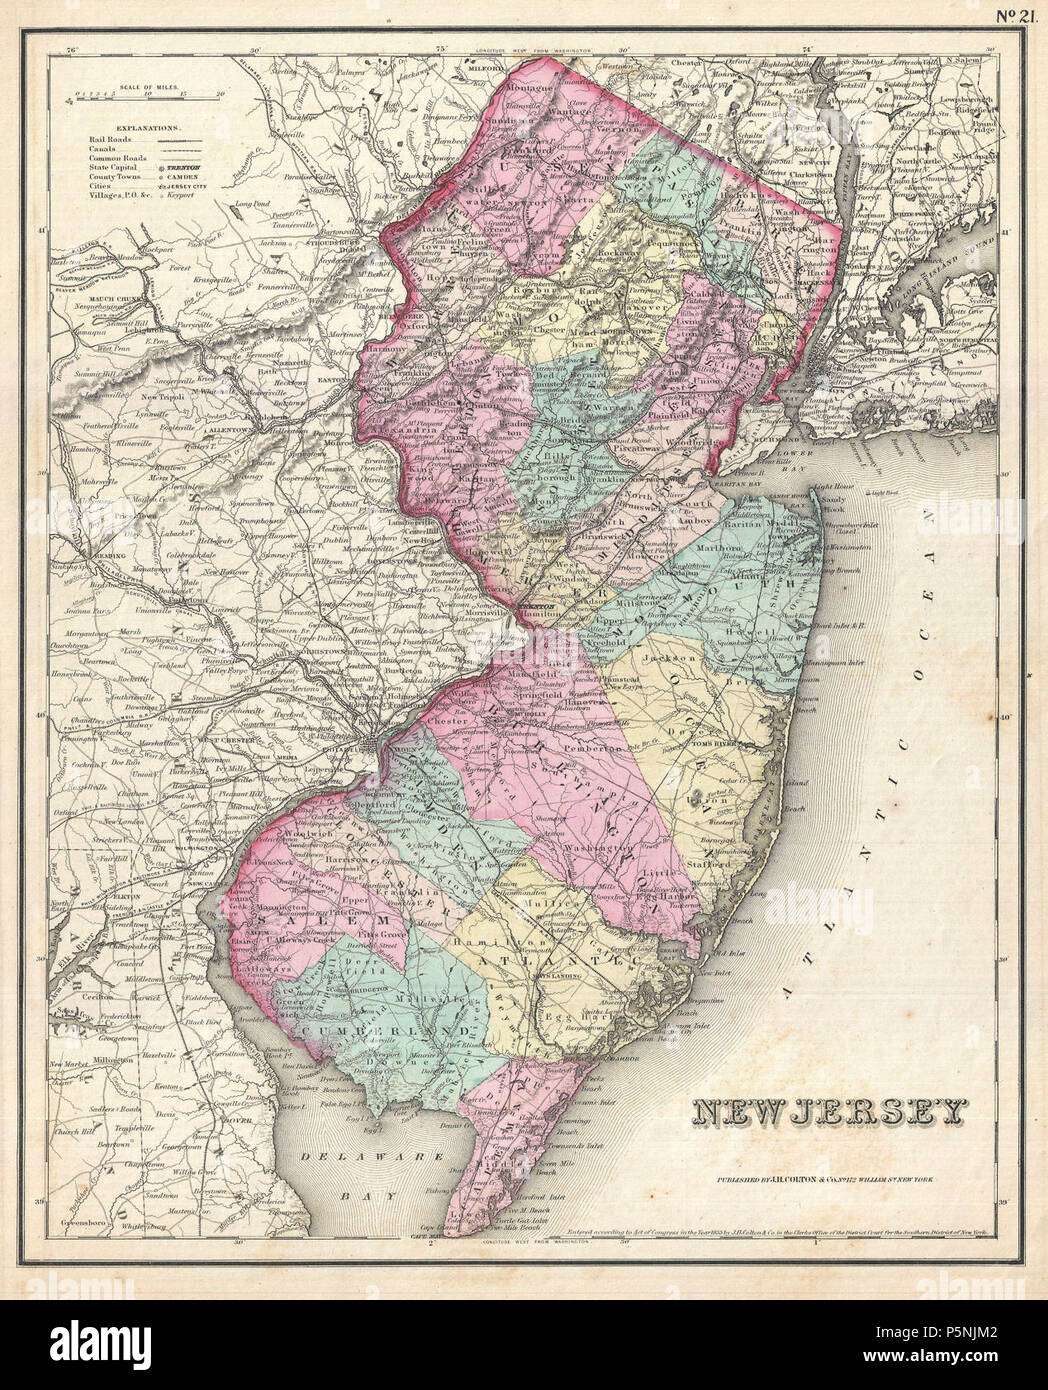 1857 Colton Map of New Jersey - Geographicus - NewJersey-colton-1857. - Stock Image